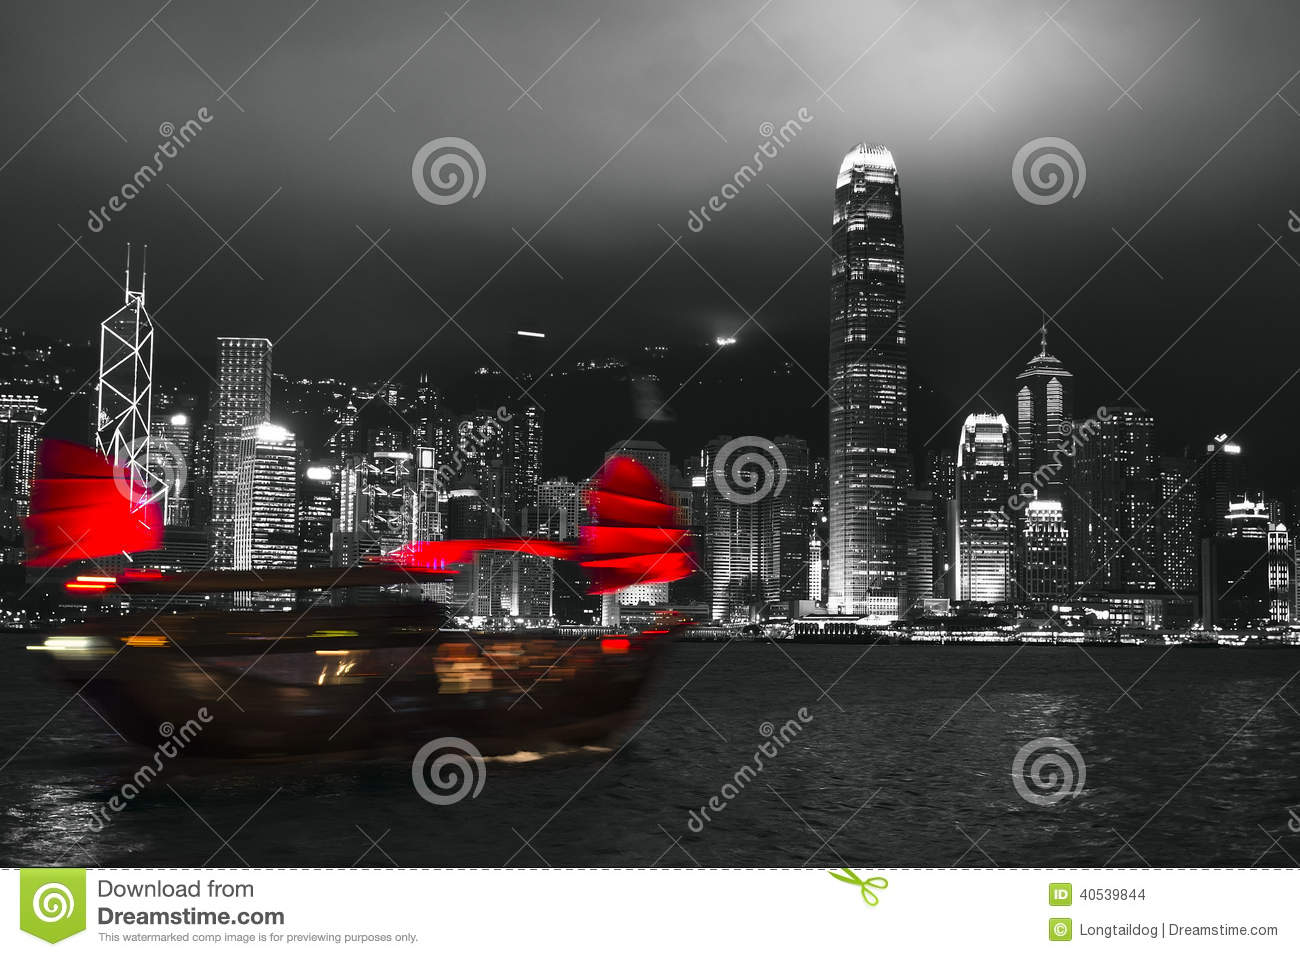 Hong Kong harbor at night with blurred silhouette of sailboat